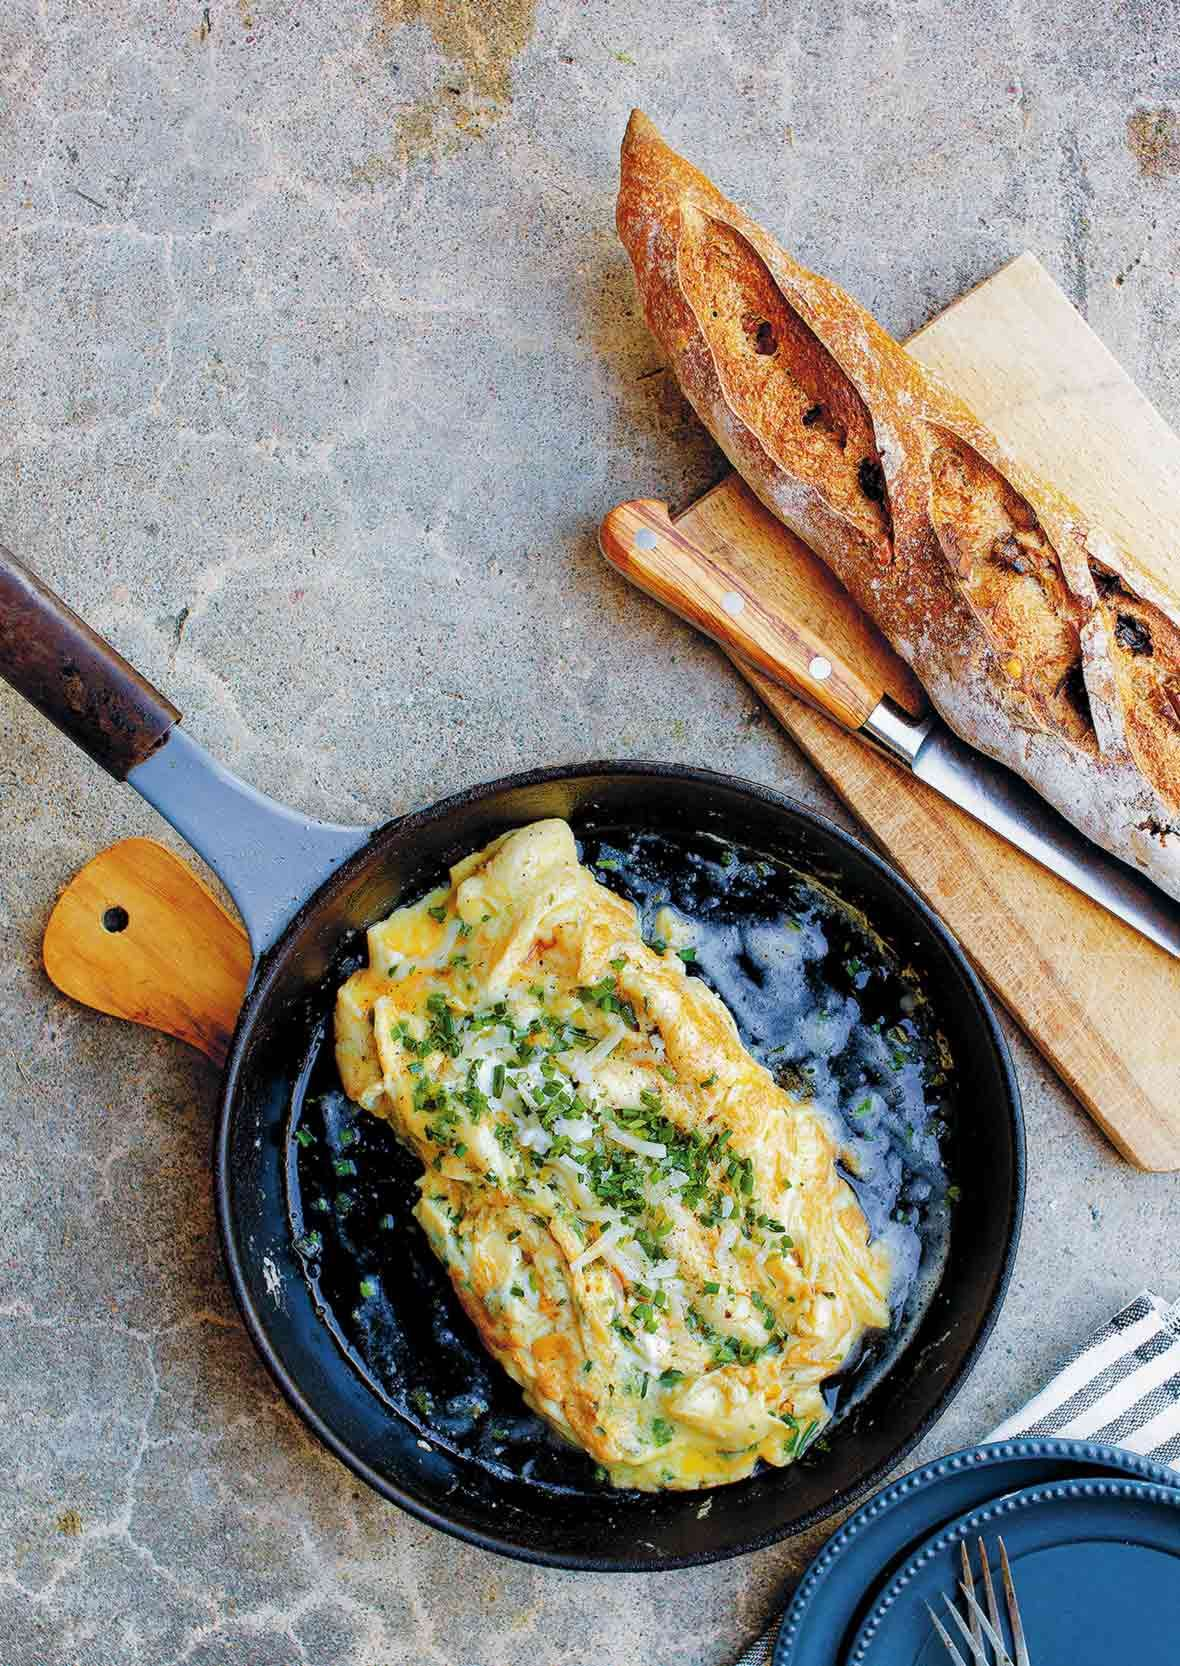 Cheese Omelet   Recipe   Food recipes, Brunch recipes ...